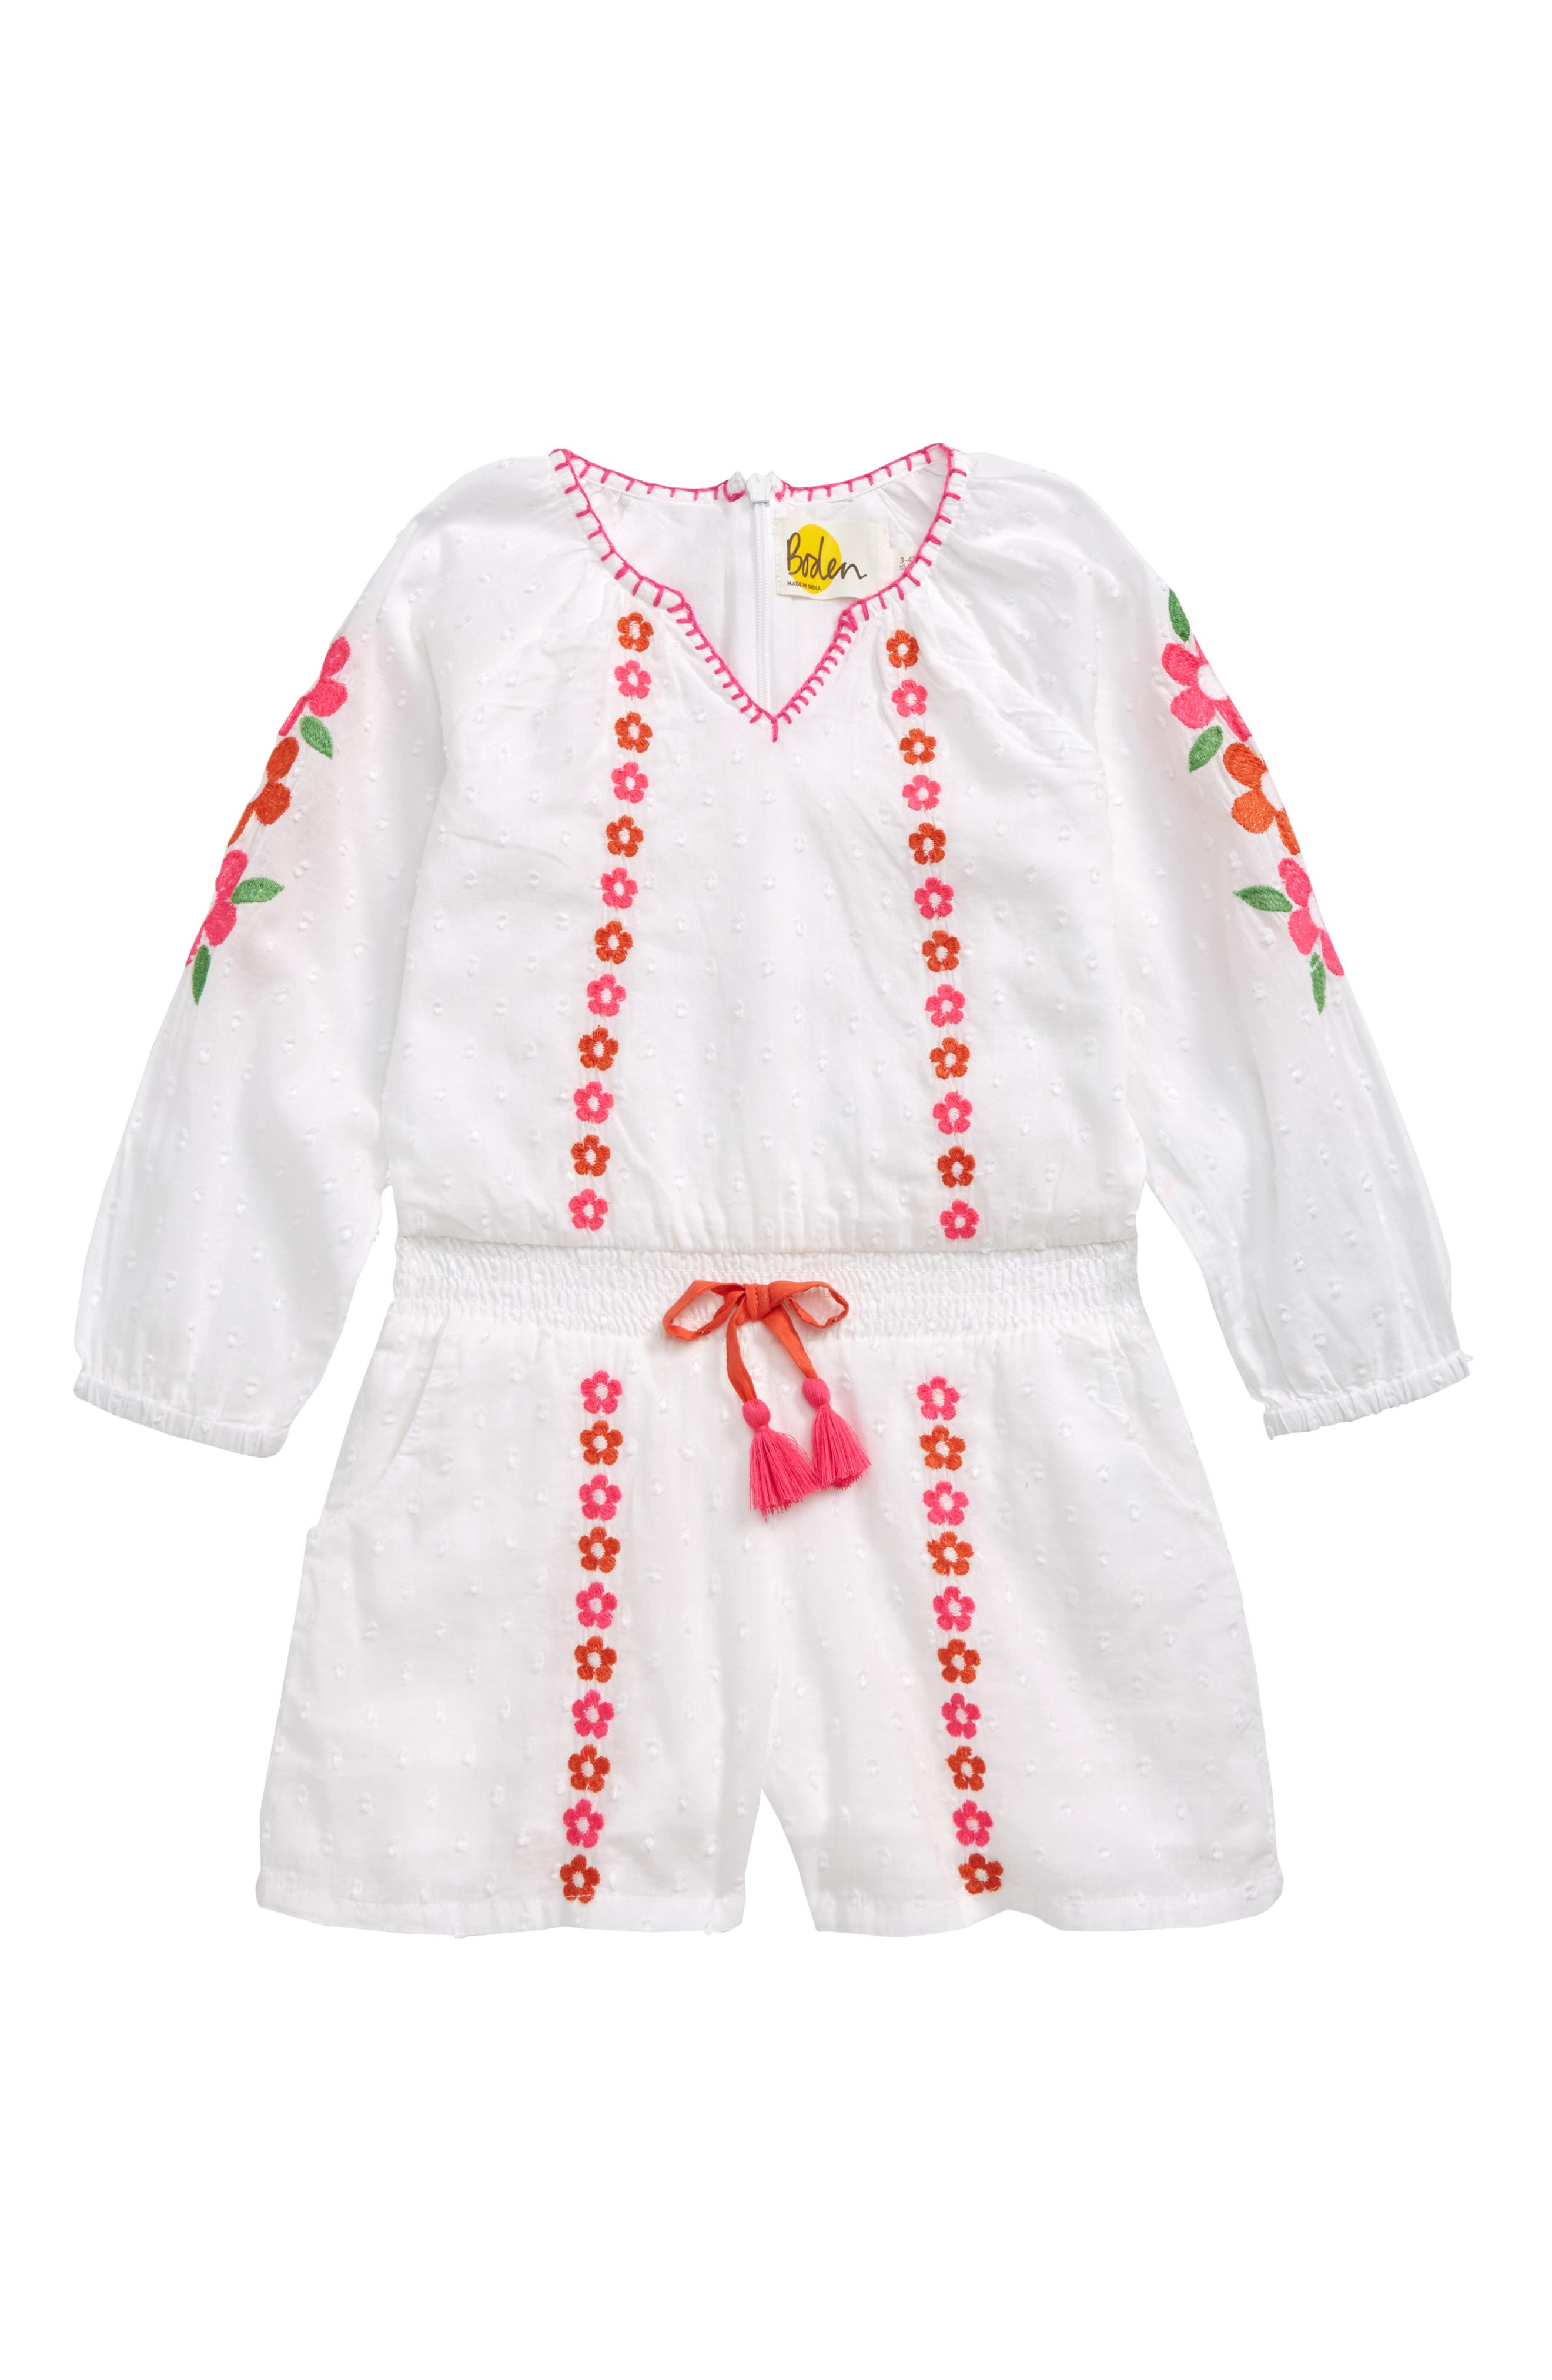 Girls Mini Boden Embroidered Woven Romper Size 56Y  White